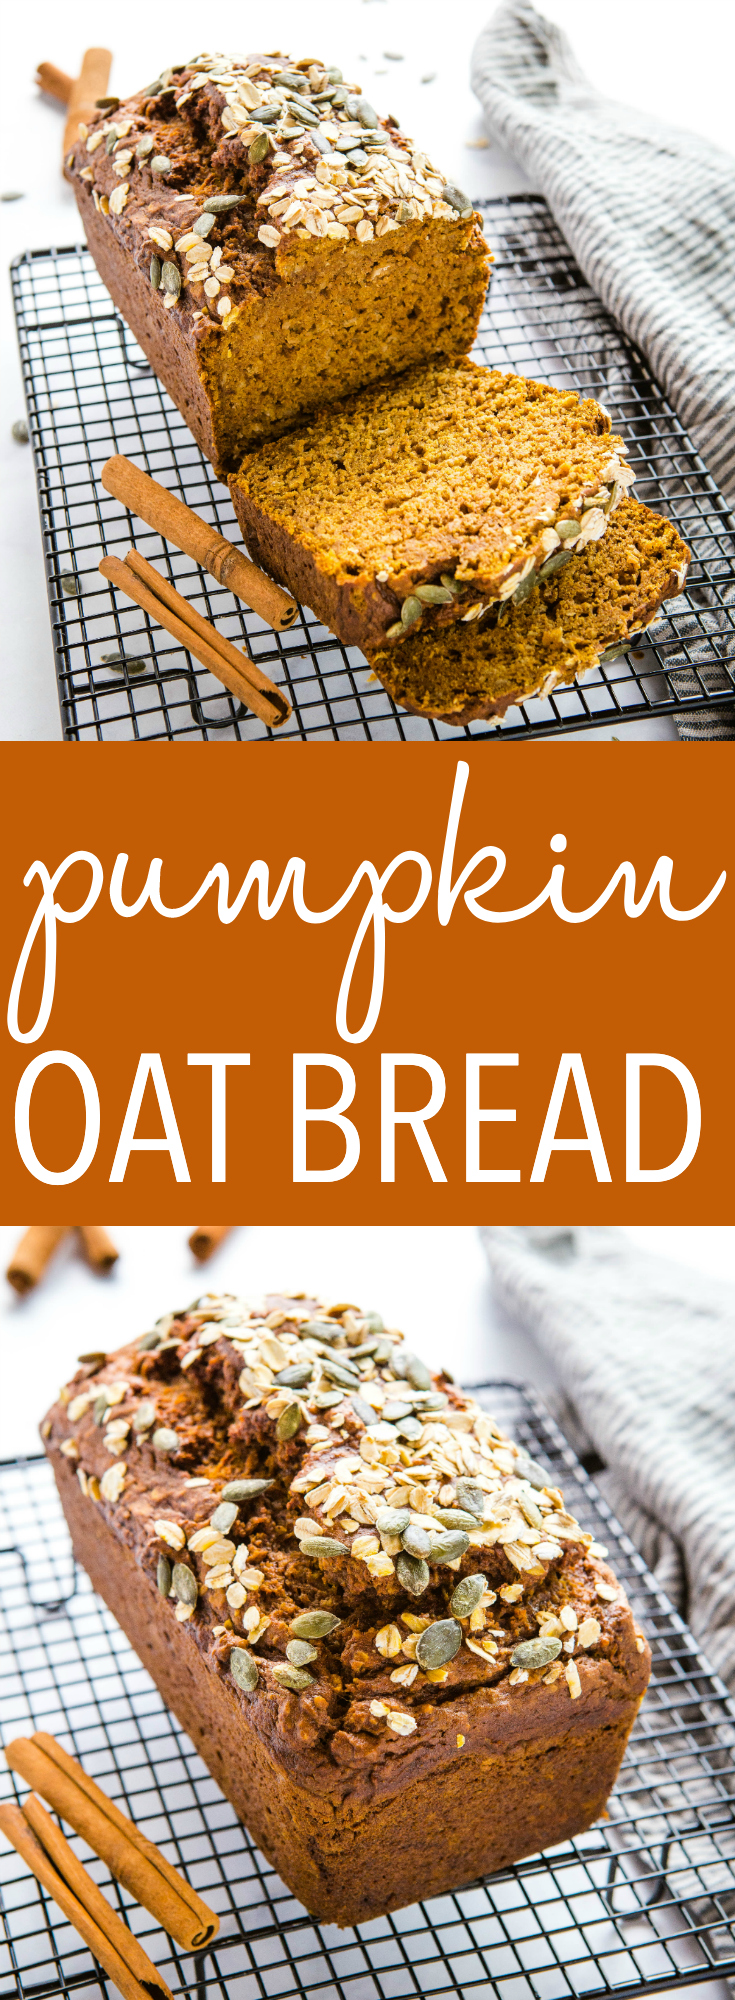 This Healthy Pumpkin Oat Bread is moist and delicious and packed with real pumpkin, applesauce, and whole grain oats! It's moist and delicious, and perfect for fall! Recipe from thebusybaker.ca! #pumpkin #oats #applesauce #healthy #baking #fall #harvest #homemade #homesteading #fallbaking #lowfat #highfibre via @busybakerblog